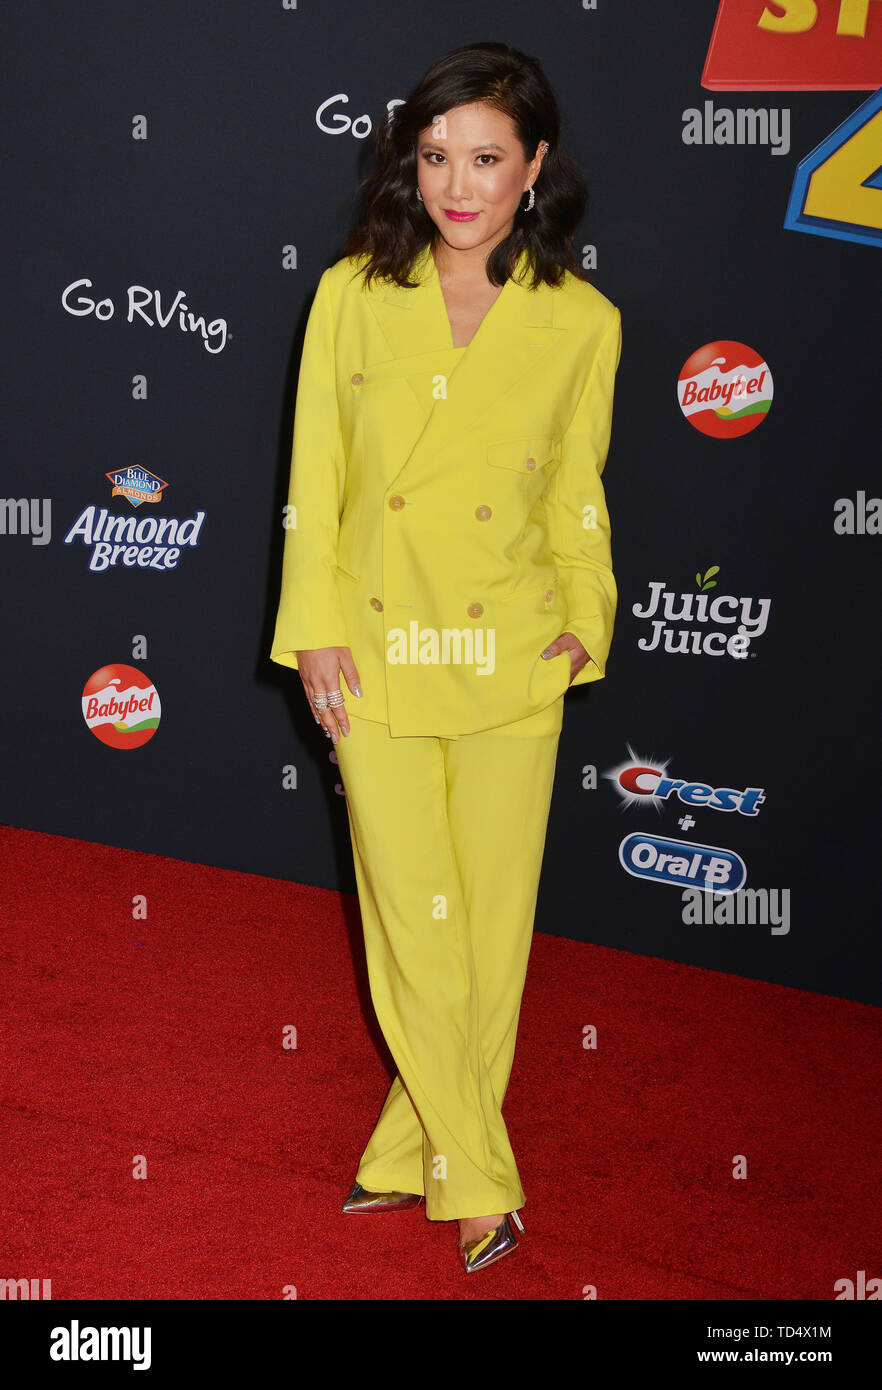 Ally Maki 006 arrives at the premiere of Disney and Pixar's 'Toy Story 4' on June 11, 2019 in Los Angeles, California. - Stock Image